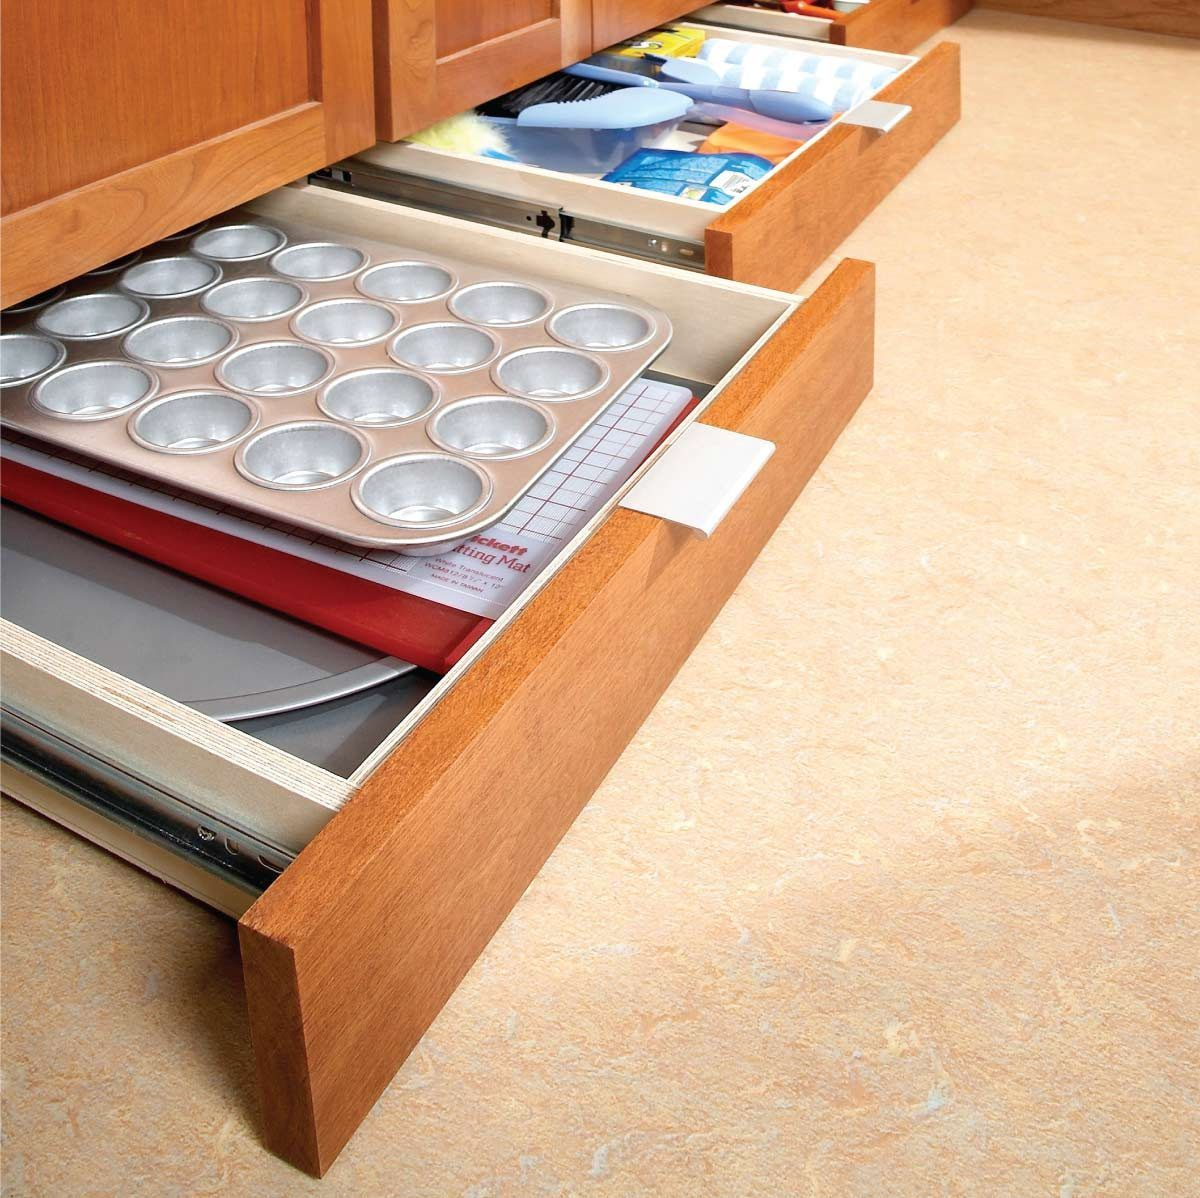 How To Build Under Cabinet Drawers Increase Kitchen Storage In 2020 Kitchen Cabinet Storage Under Cabinet Drawers Under Cabinet Storage